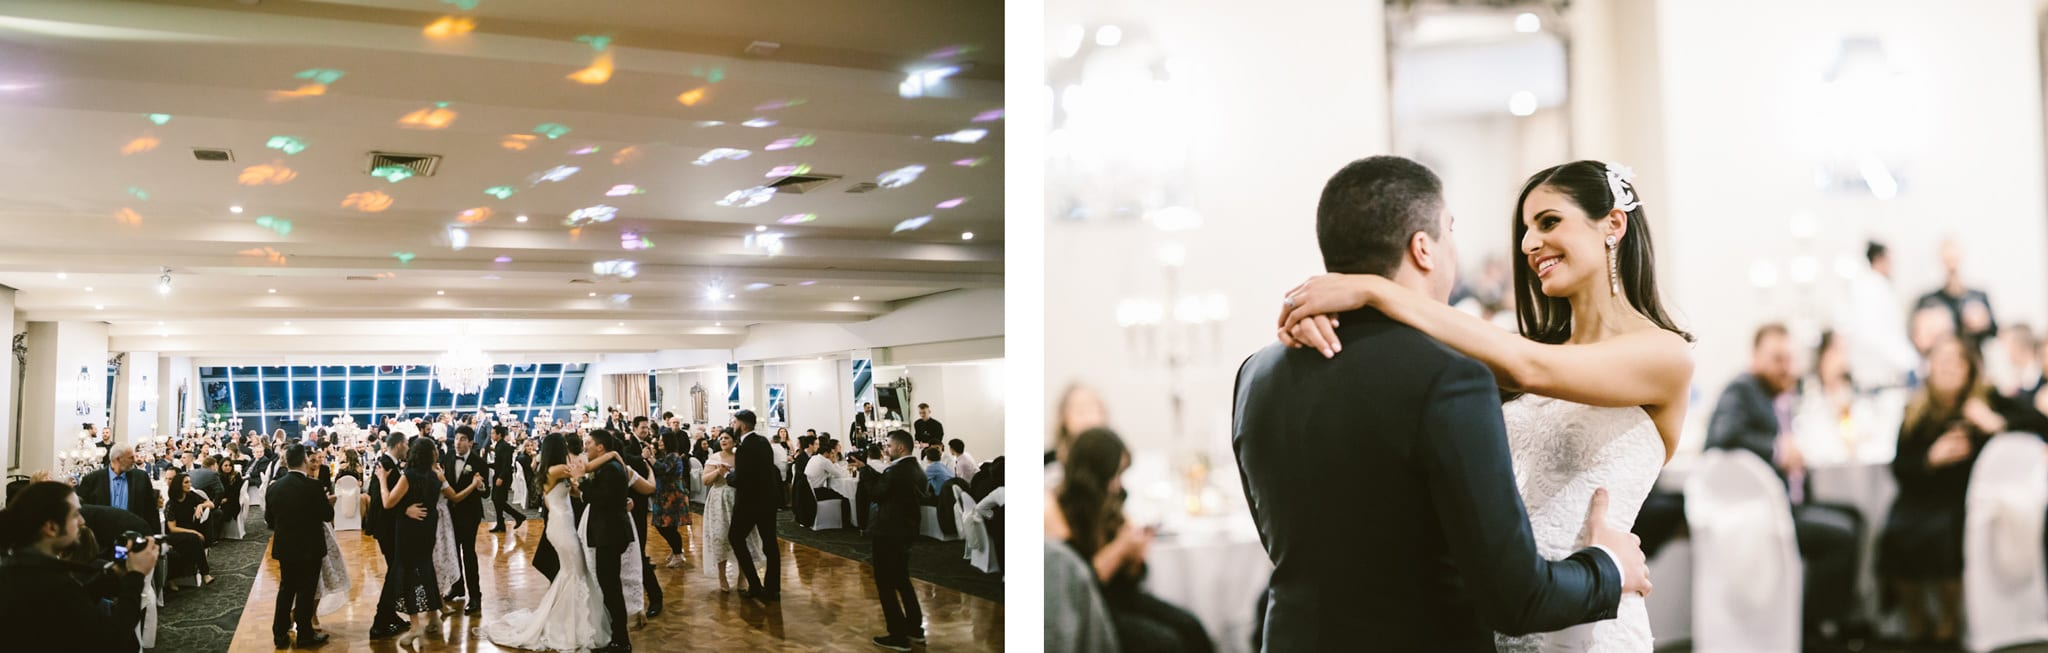 wedding dance at the lincoln of toorak in melbourne - party and event photographer